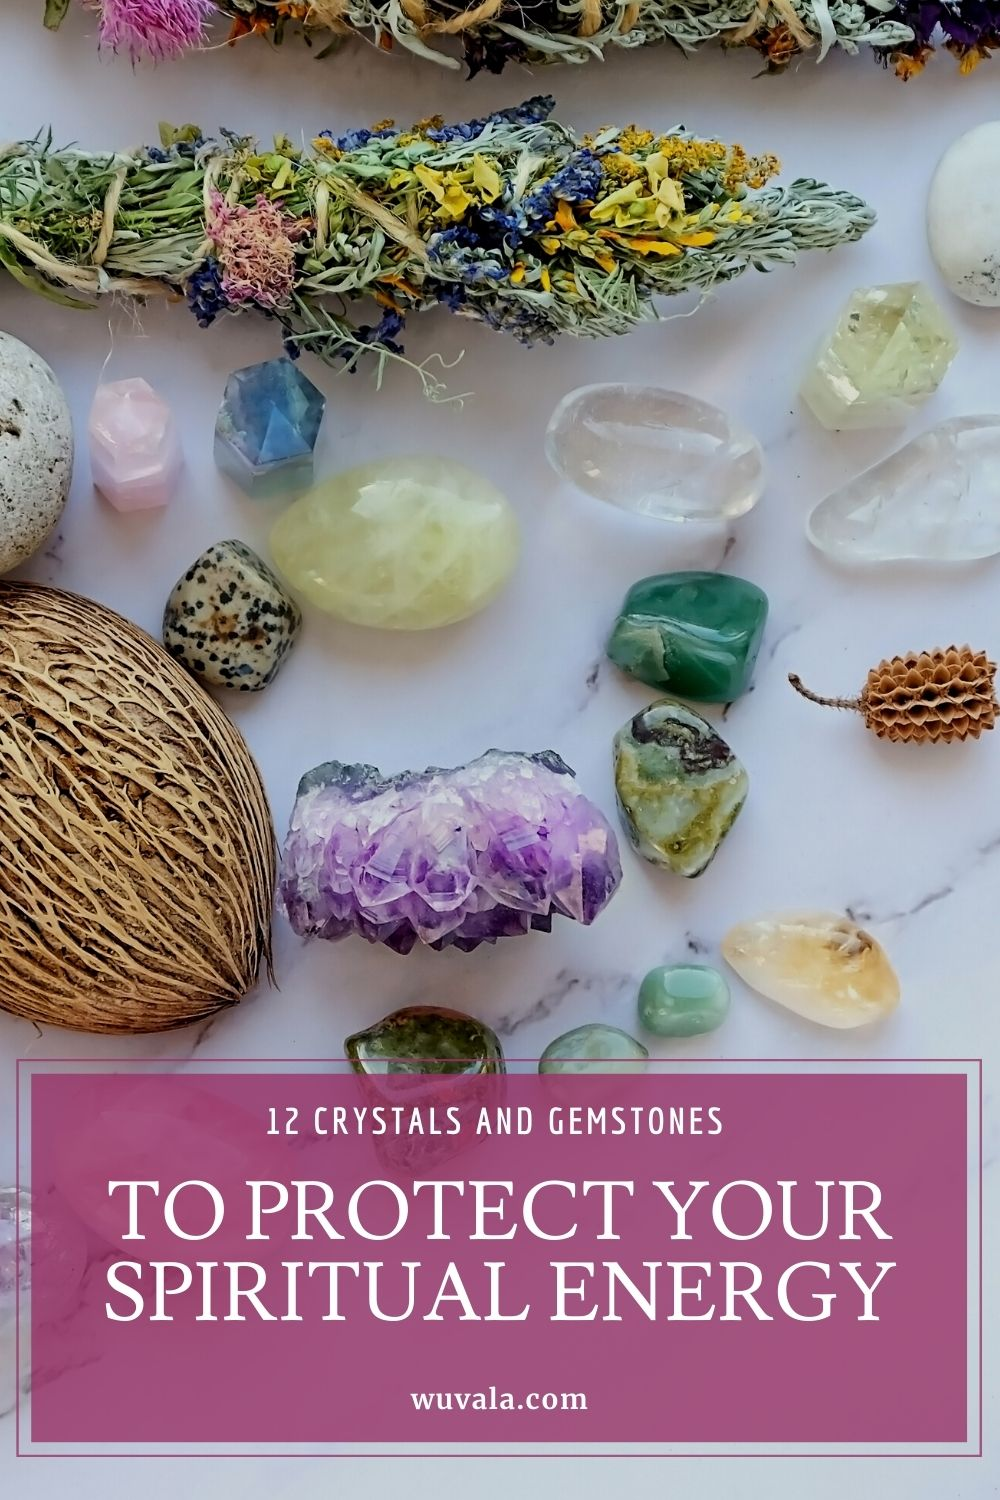 12 Crystals and Gemstones To Protect Your Energy